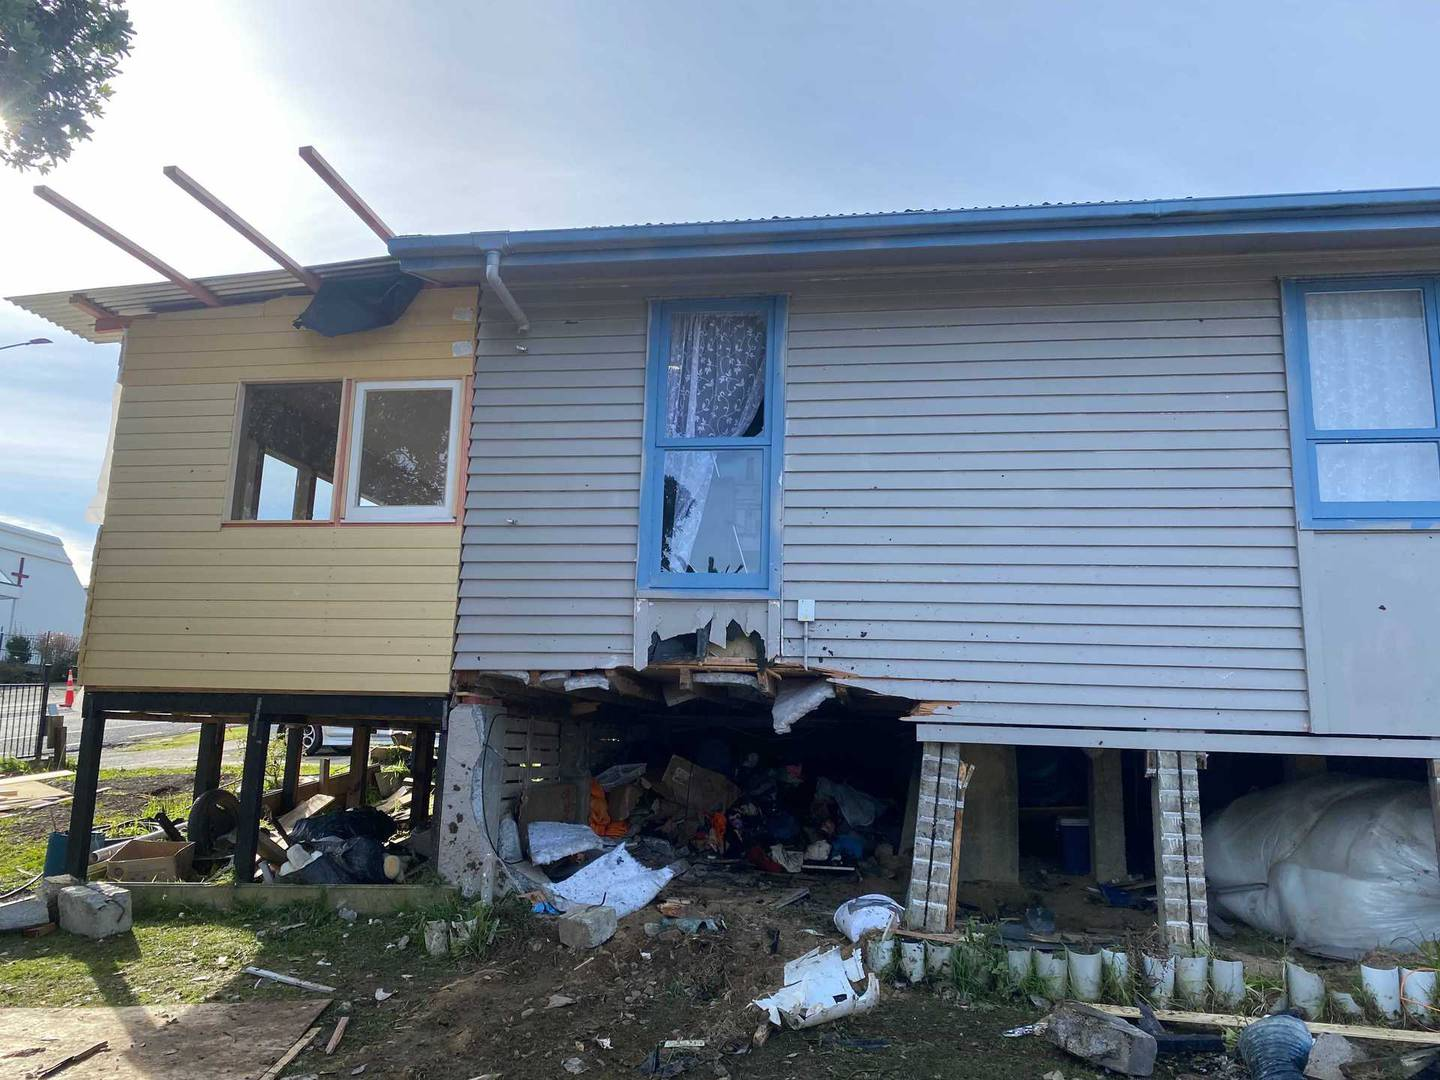 Two people died after a car crashed into a house on Warspite Ave in Porirua. Photo / Nick James